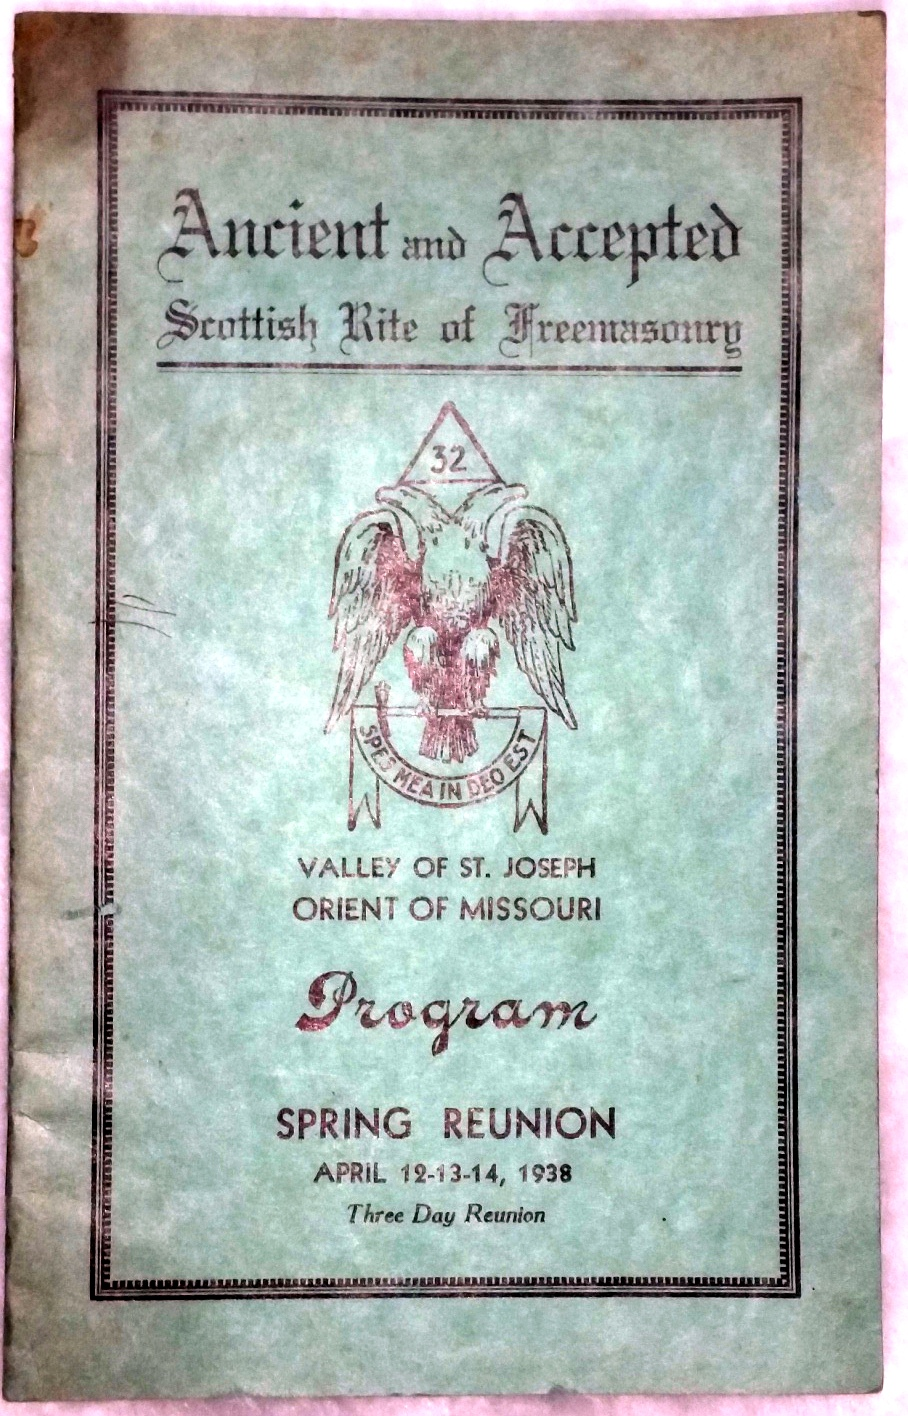 Image for Ancient and Accepted Scottish Rite of Freemasonry, Valley of St. Joseph, Orient of Missouri, Program, Spring Reunion, April 12-13-14, 1938